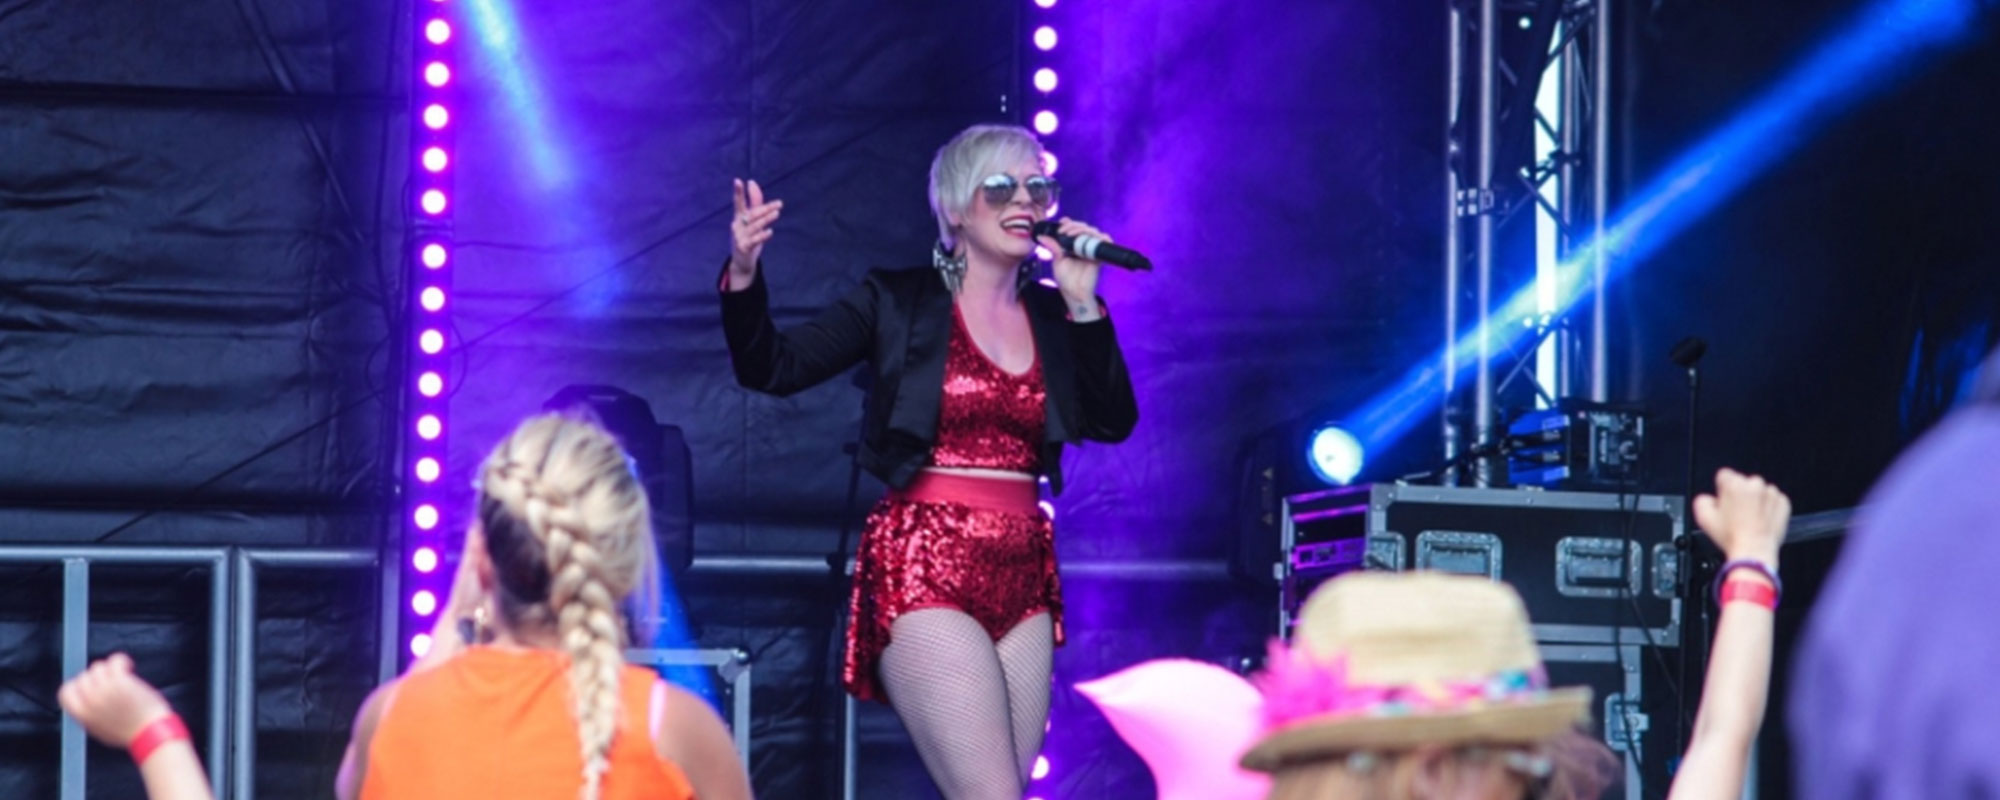 Pink tribute at Party in the Park 2018